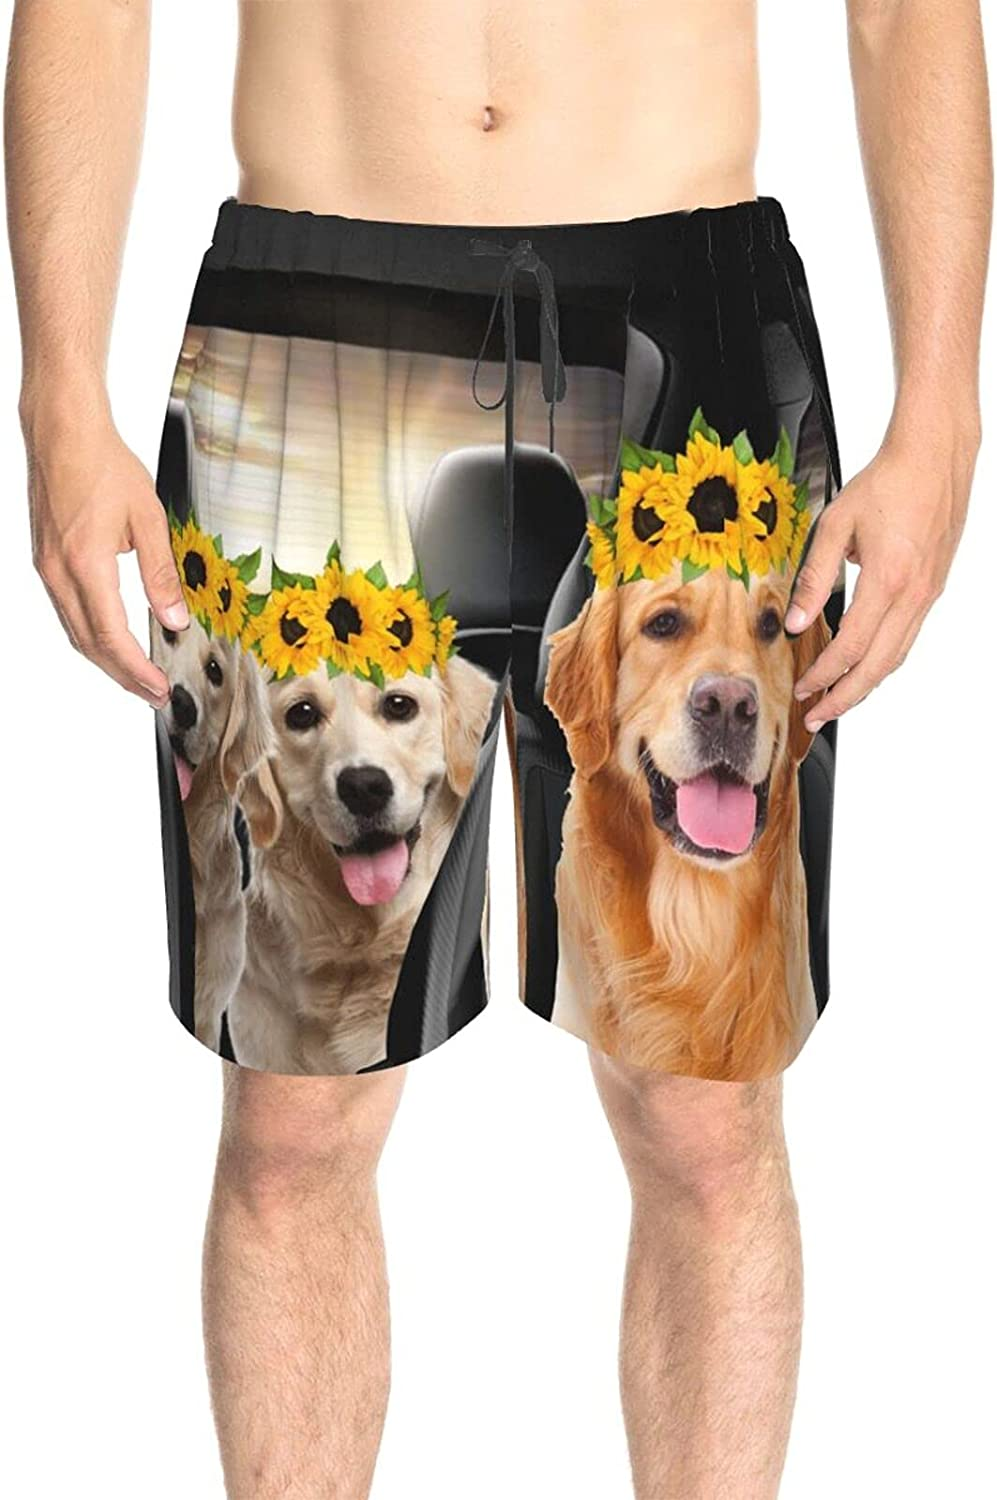 JINJUELS Mens Swim Trunks Dog Camp Trip Car Beach Board Shorts Quick Dry Cool Swimming Trunks with Lining